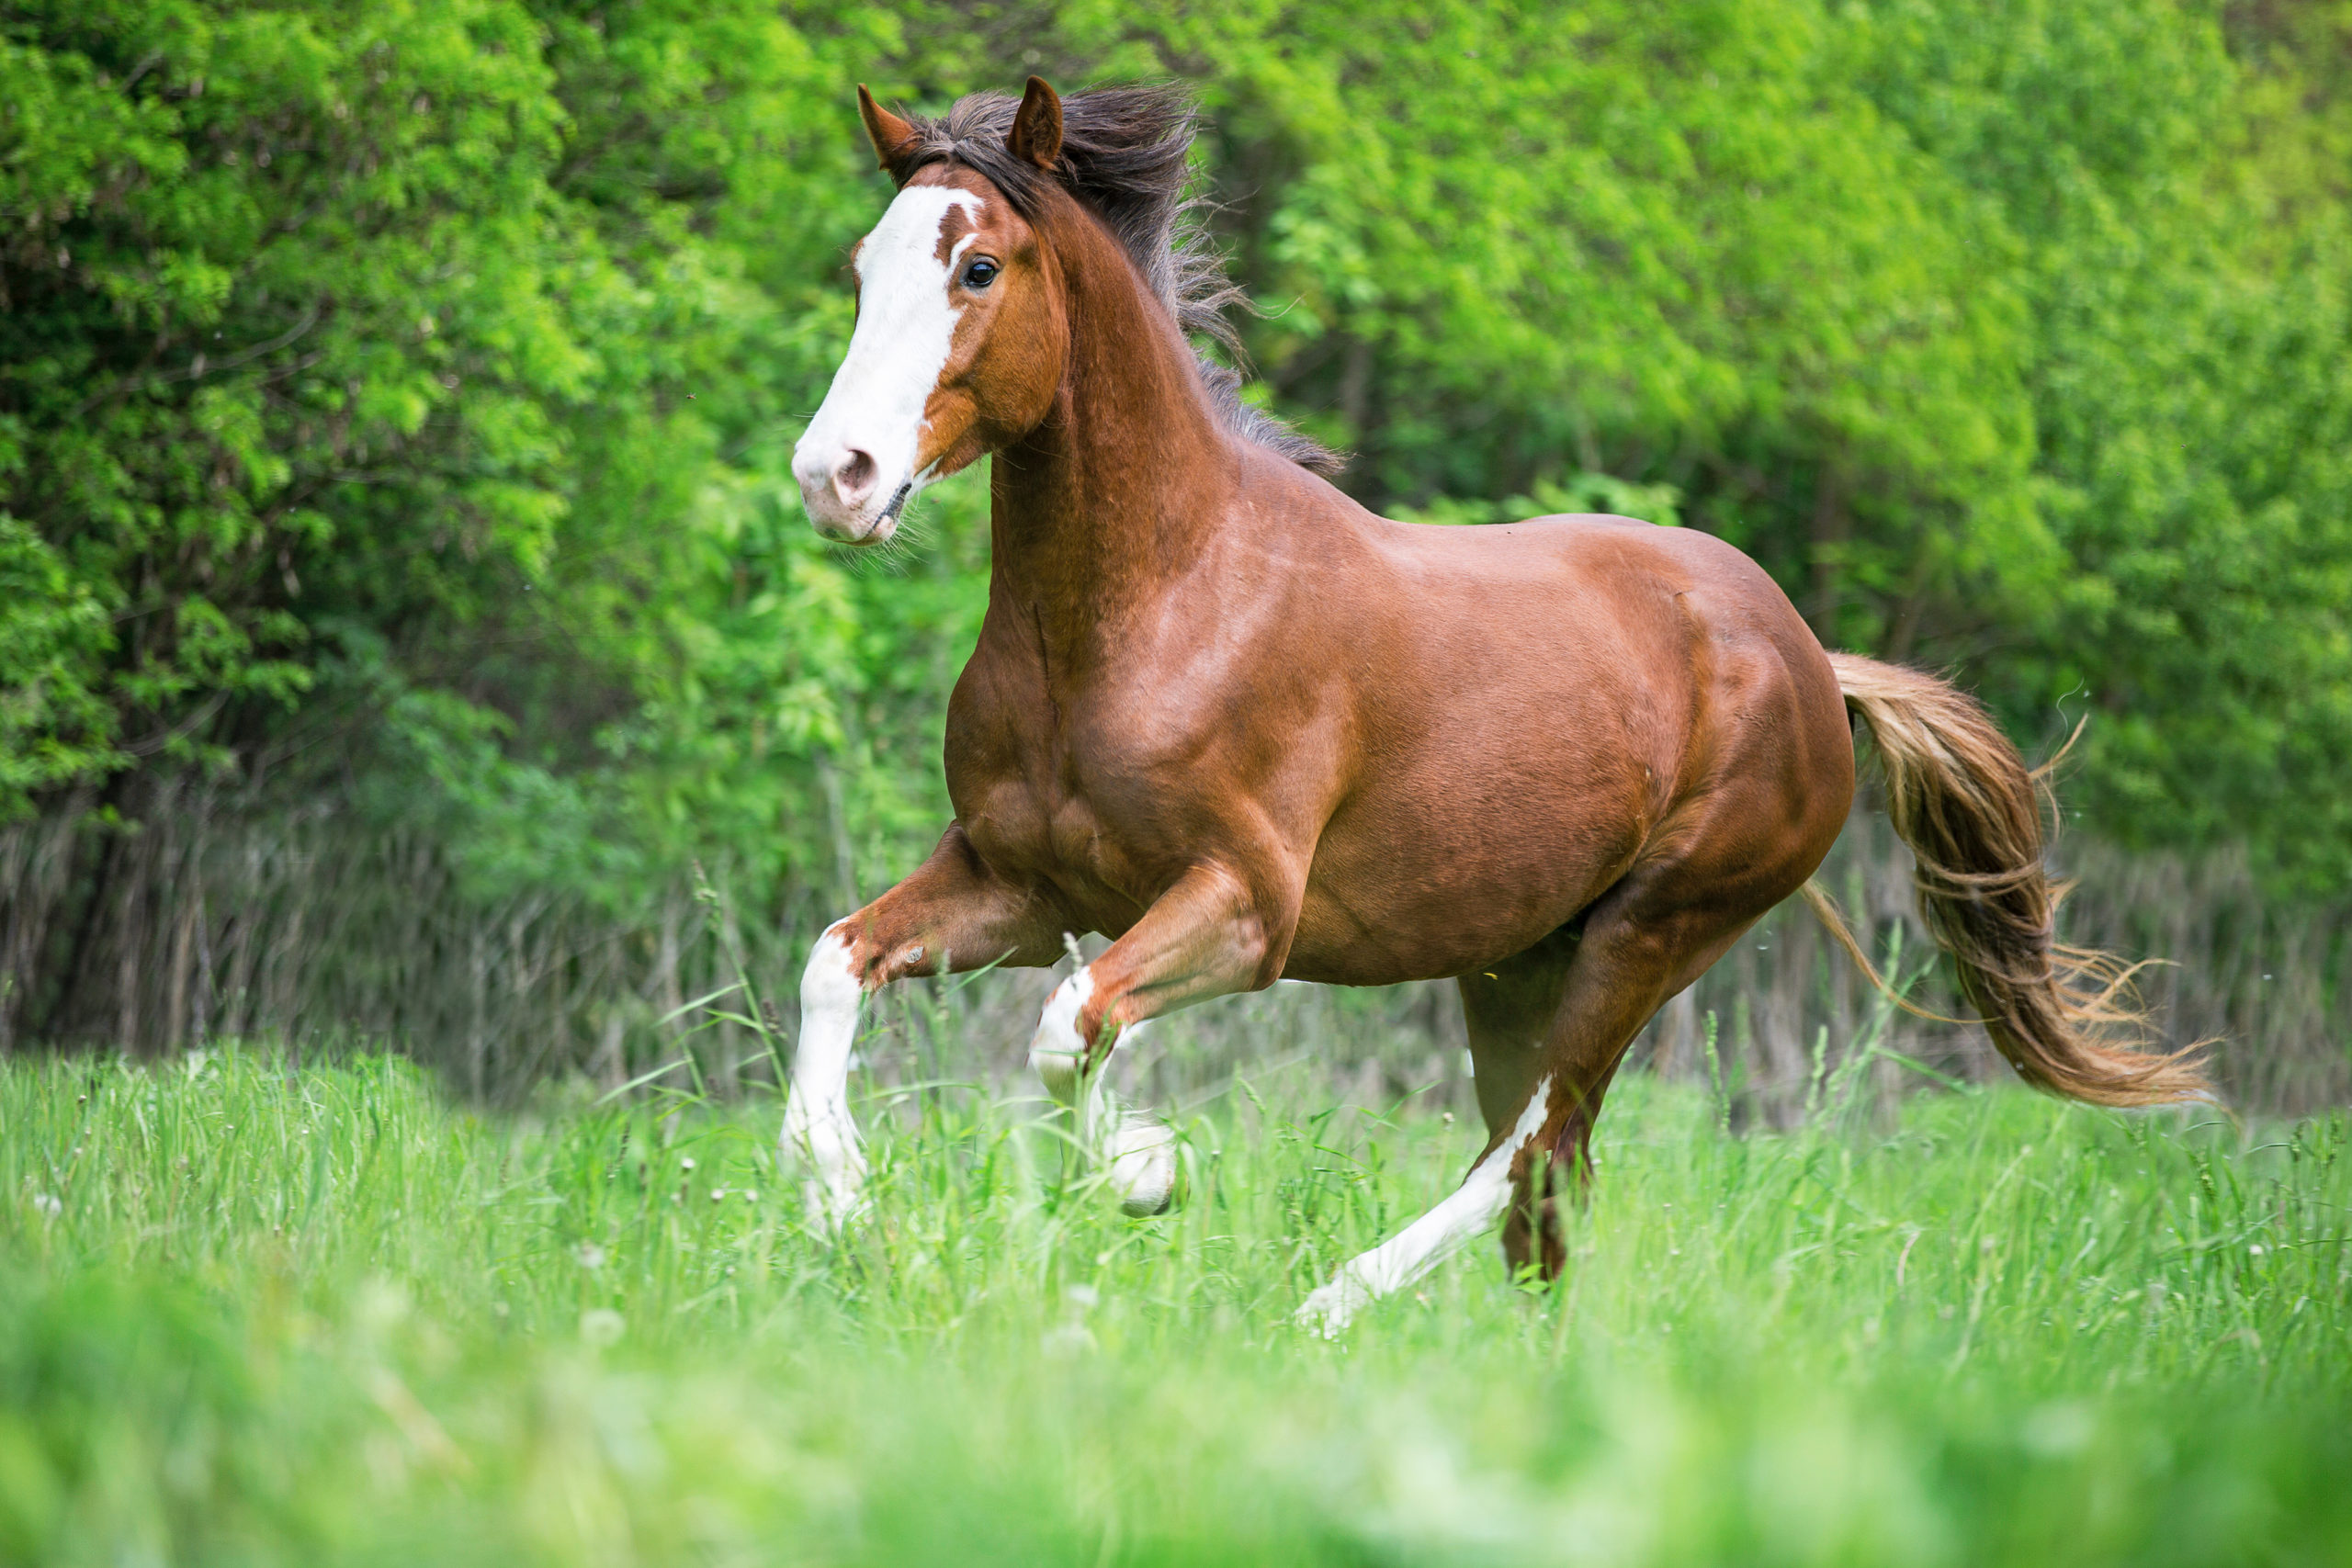 AskHQ: What affects semen quality in breeding stallions?